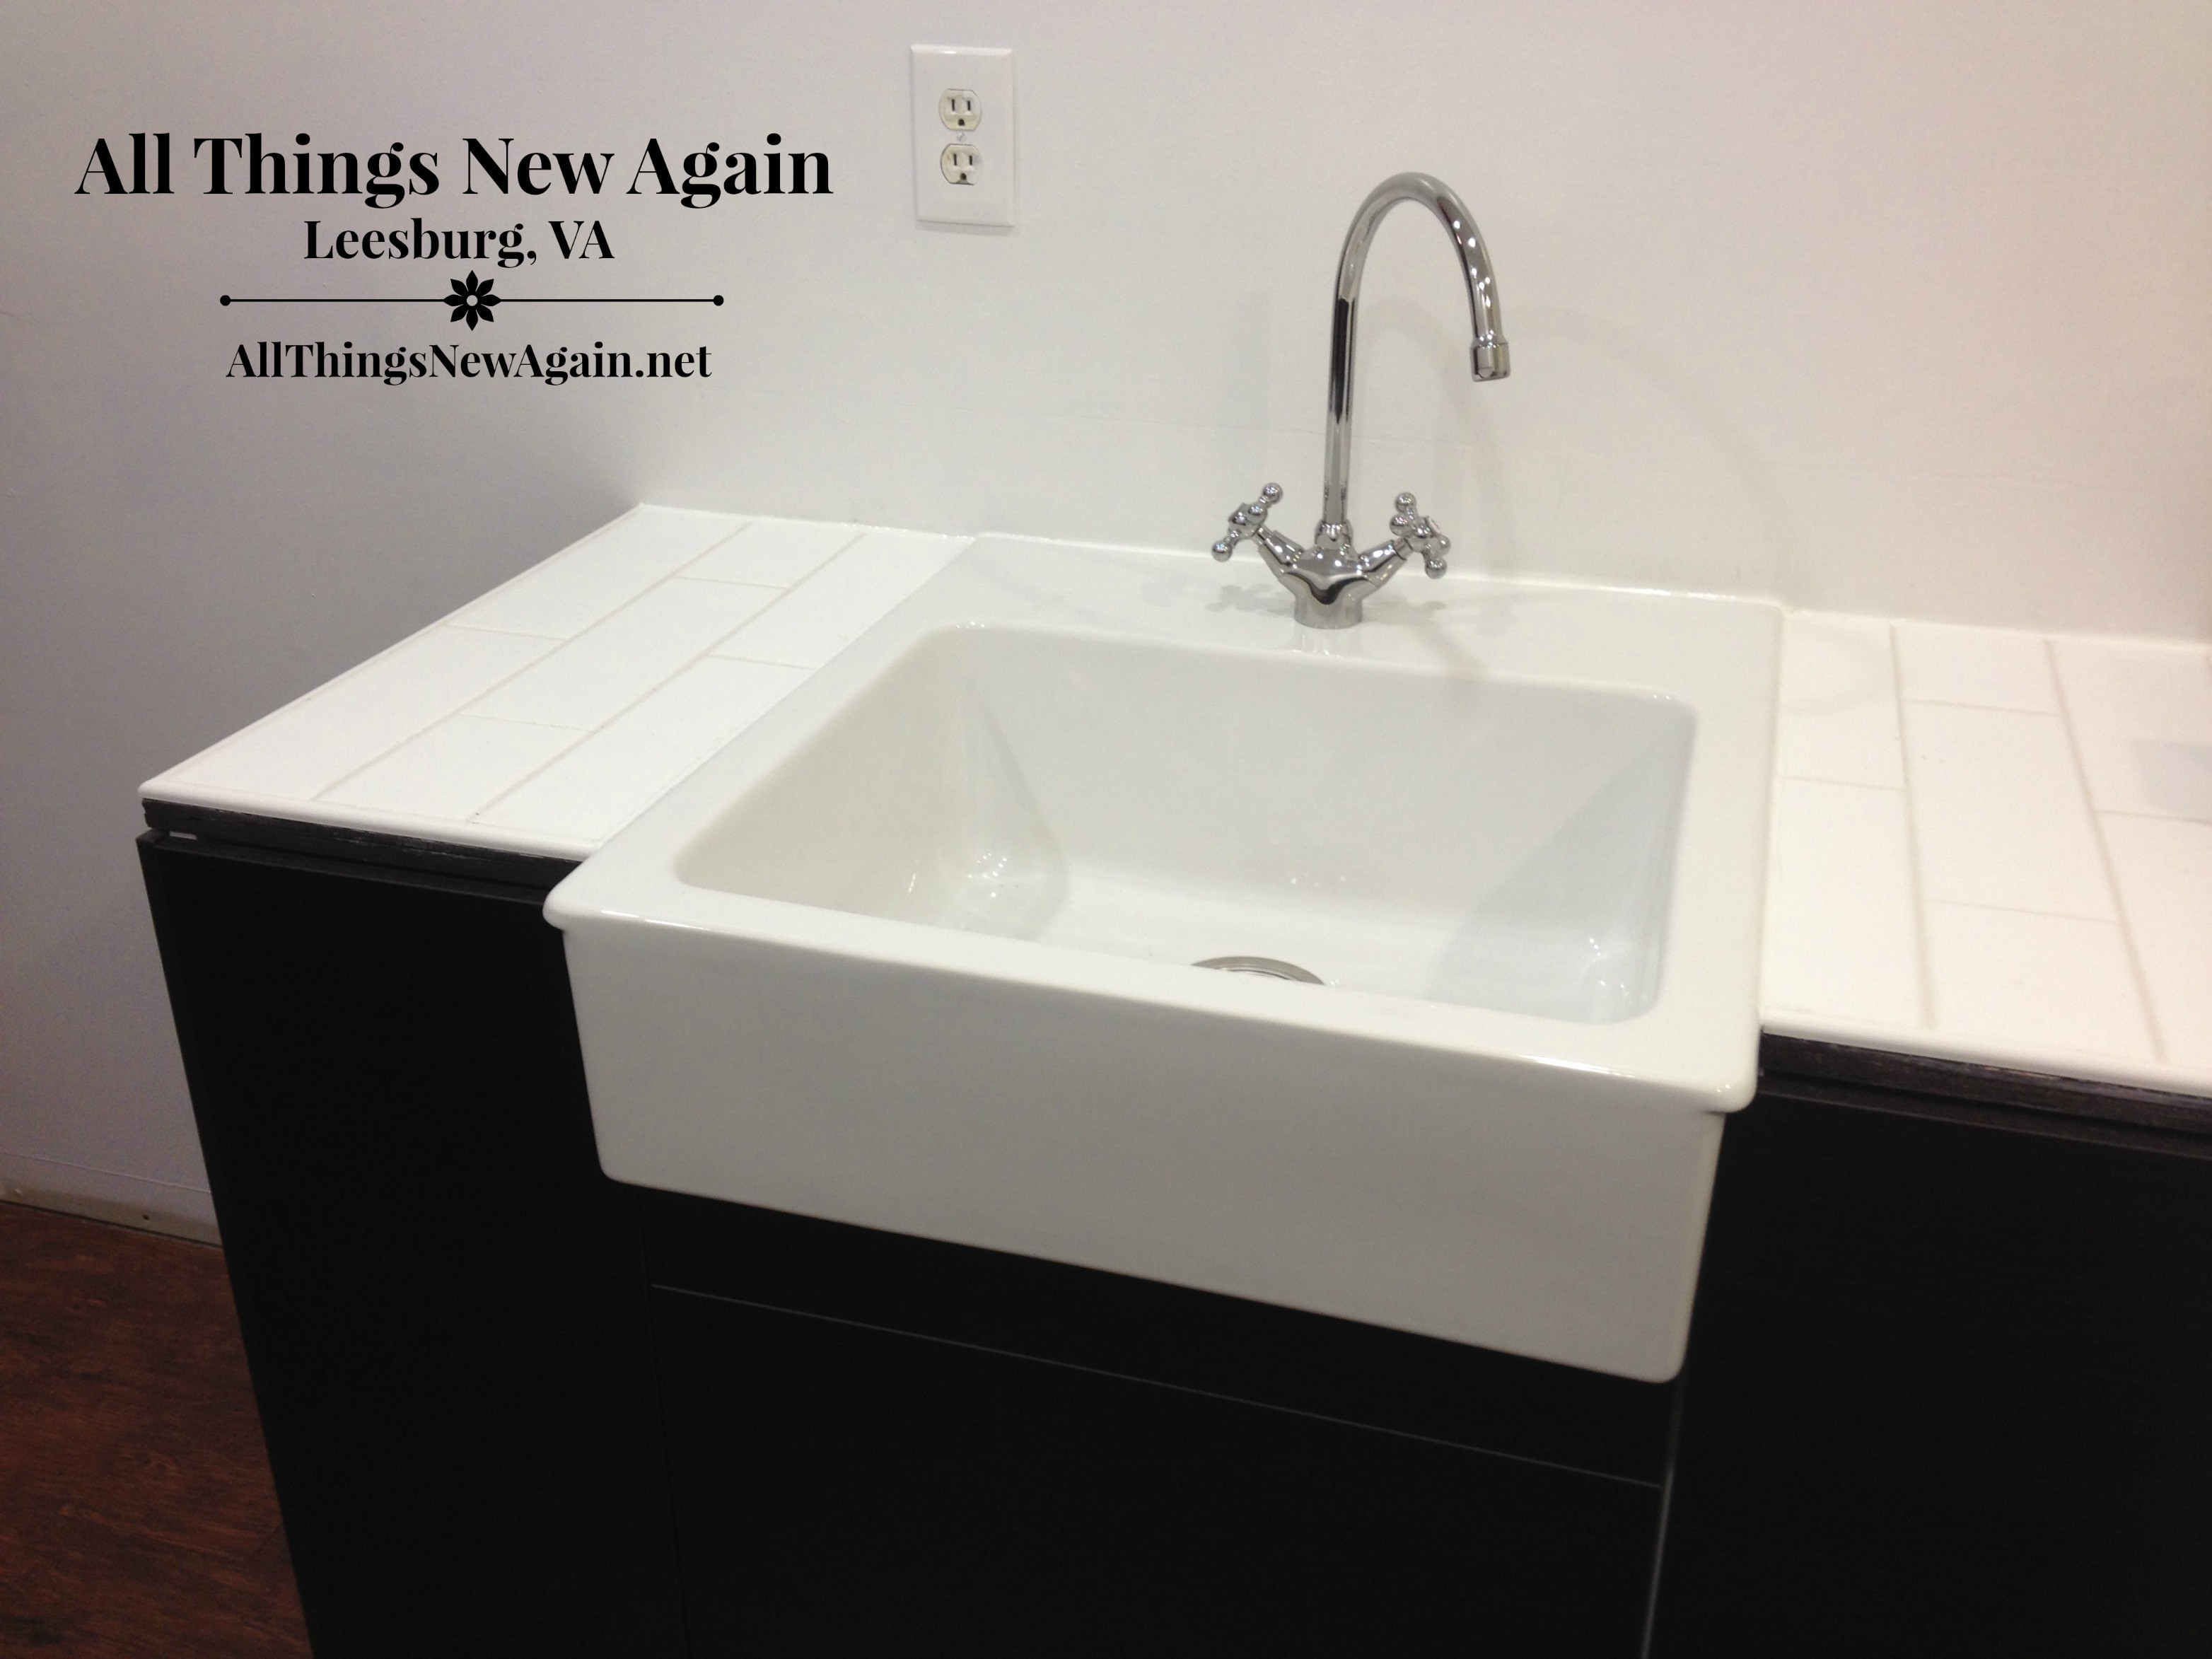 Best ideas about Laundry Room Utility Sink . Save or Pin Utility Room Sinks Bing images Now.